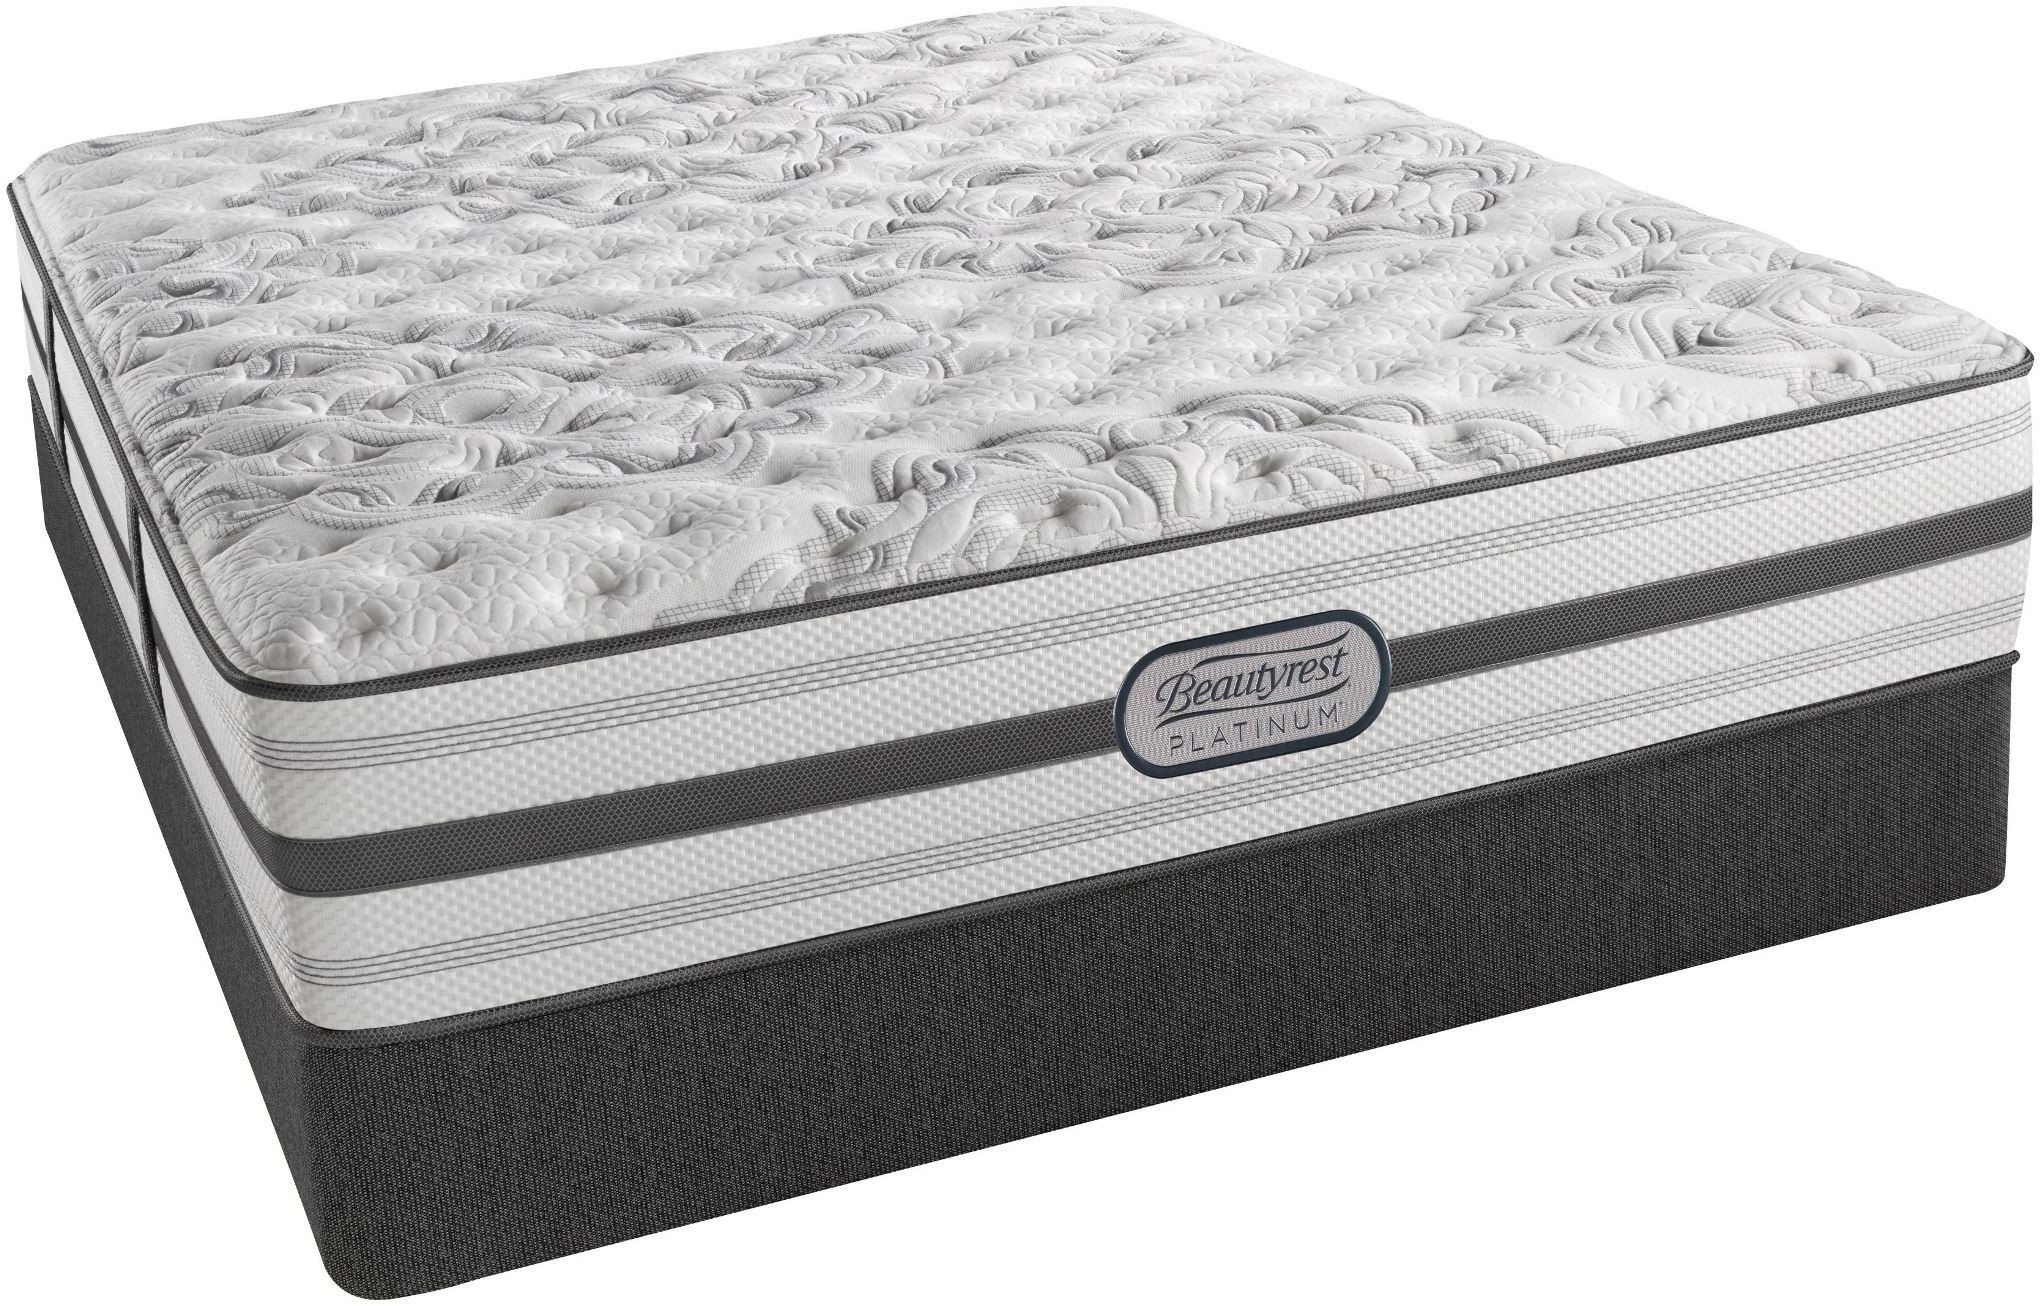 Platinum Encino King Pillow Top Plush Mattress Platinum Encino Pillow Top Plush King Simmons